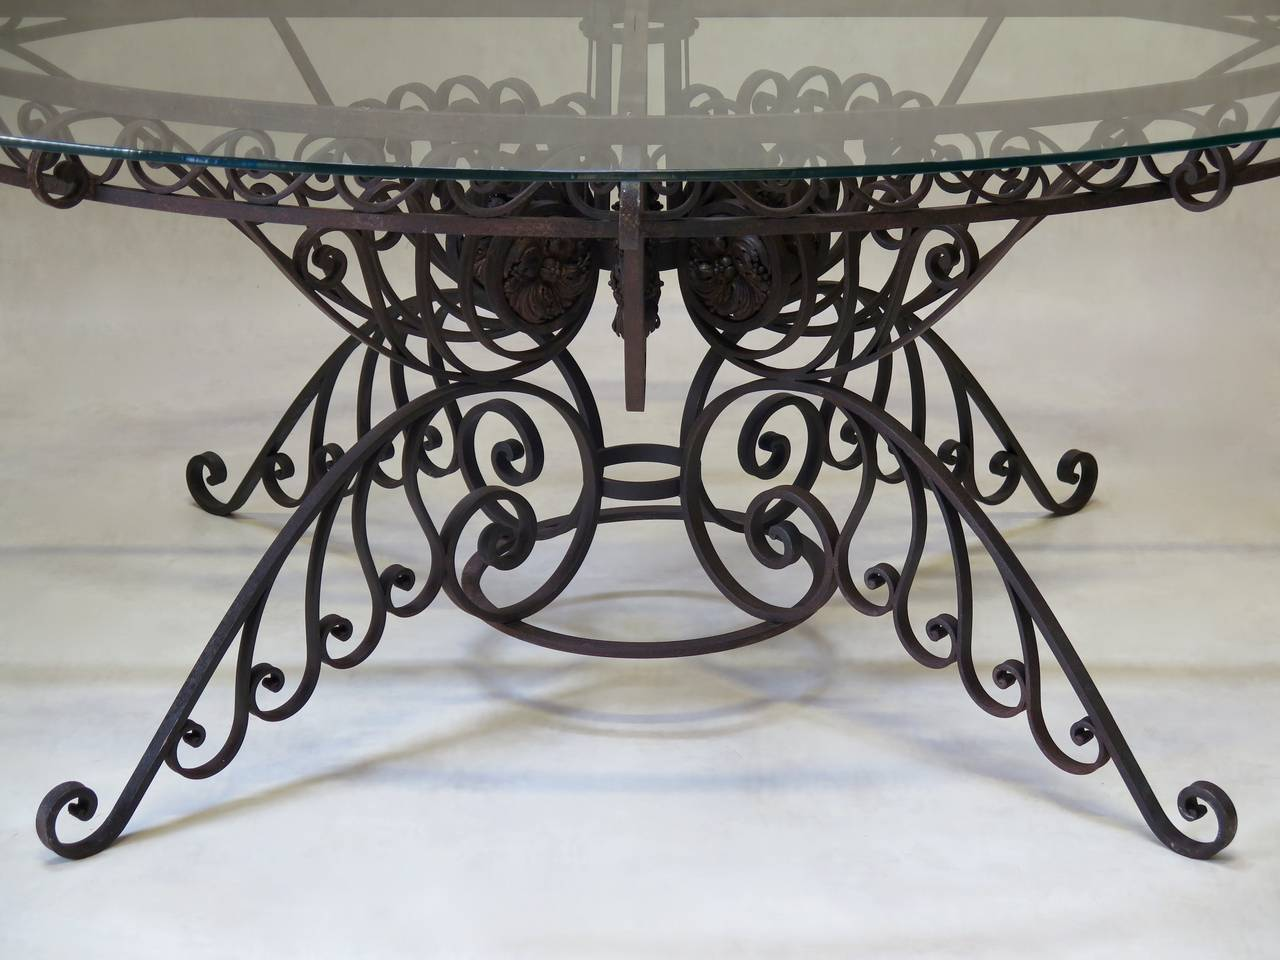 Spectacular Oval Wrought Iron Art Deco Dining Table, France, 1930s For Sale 1